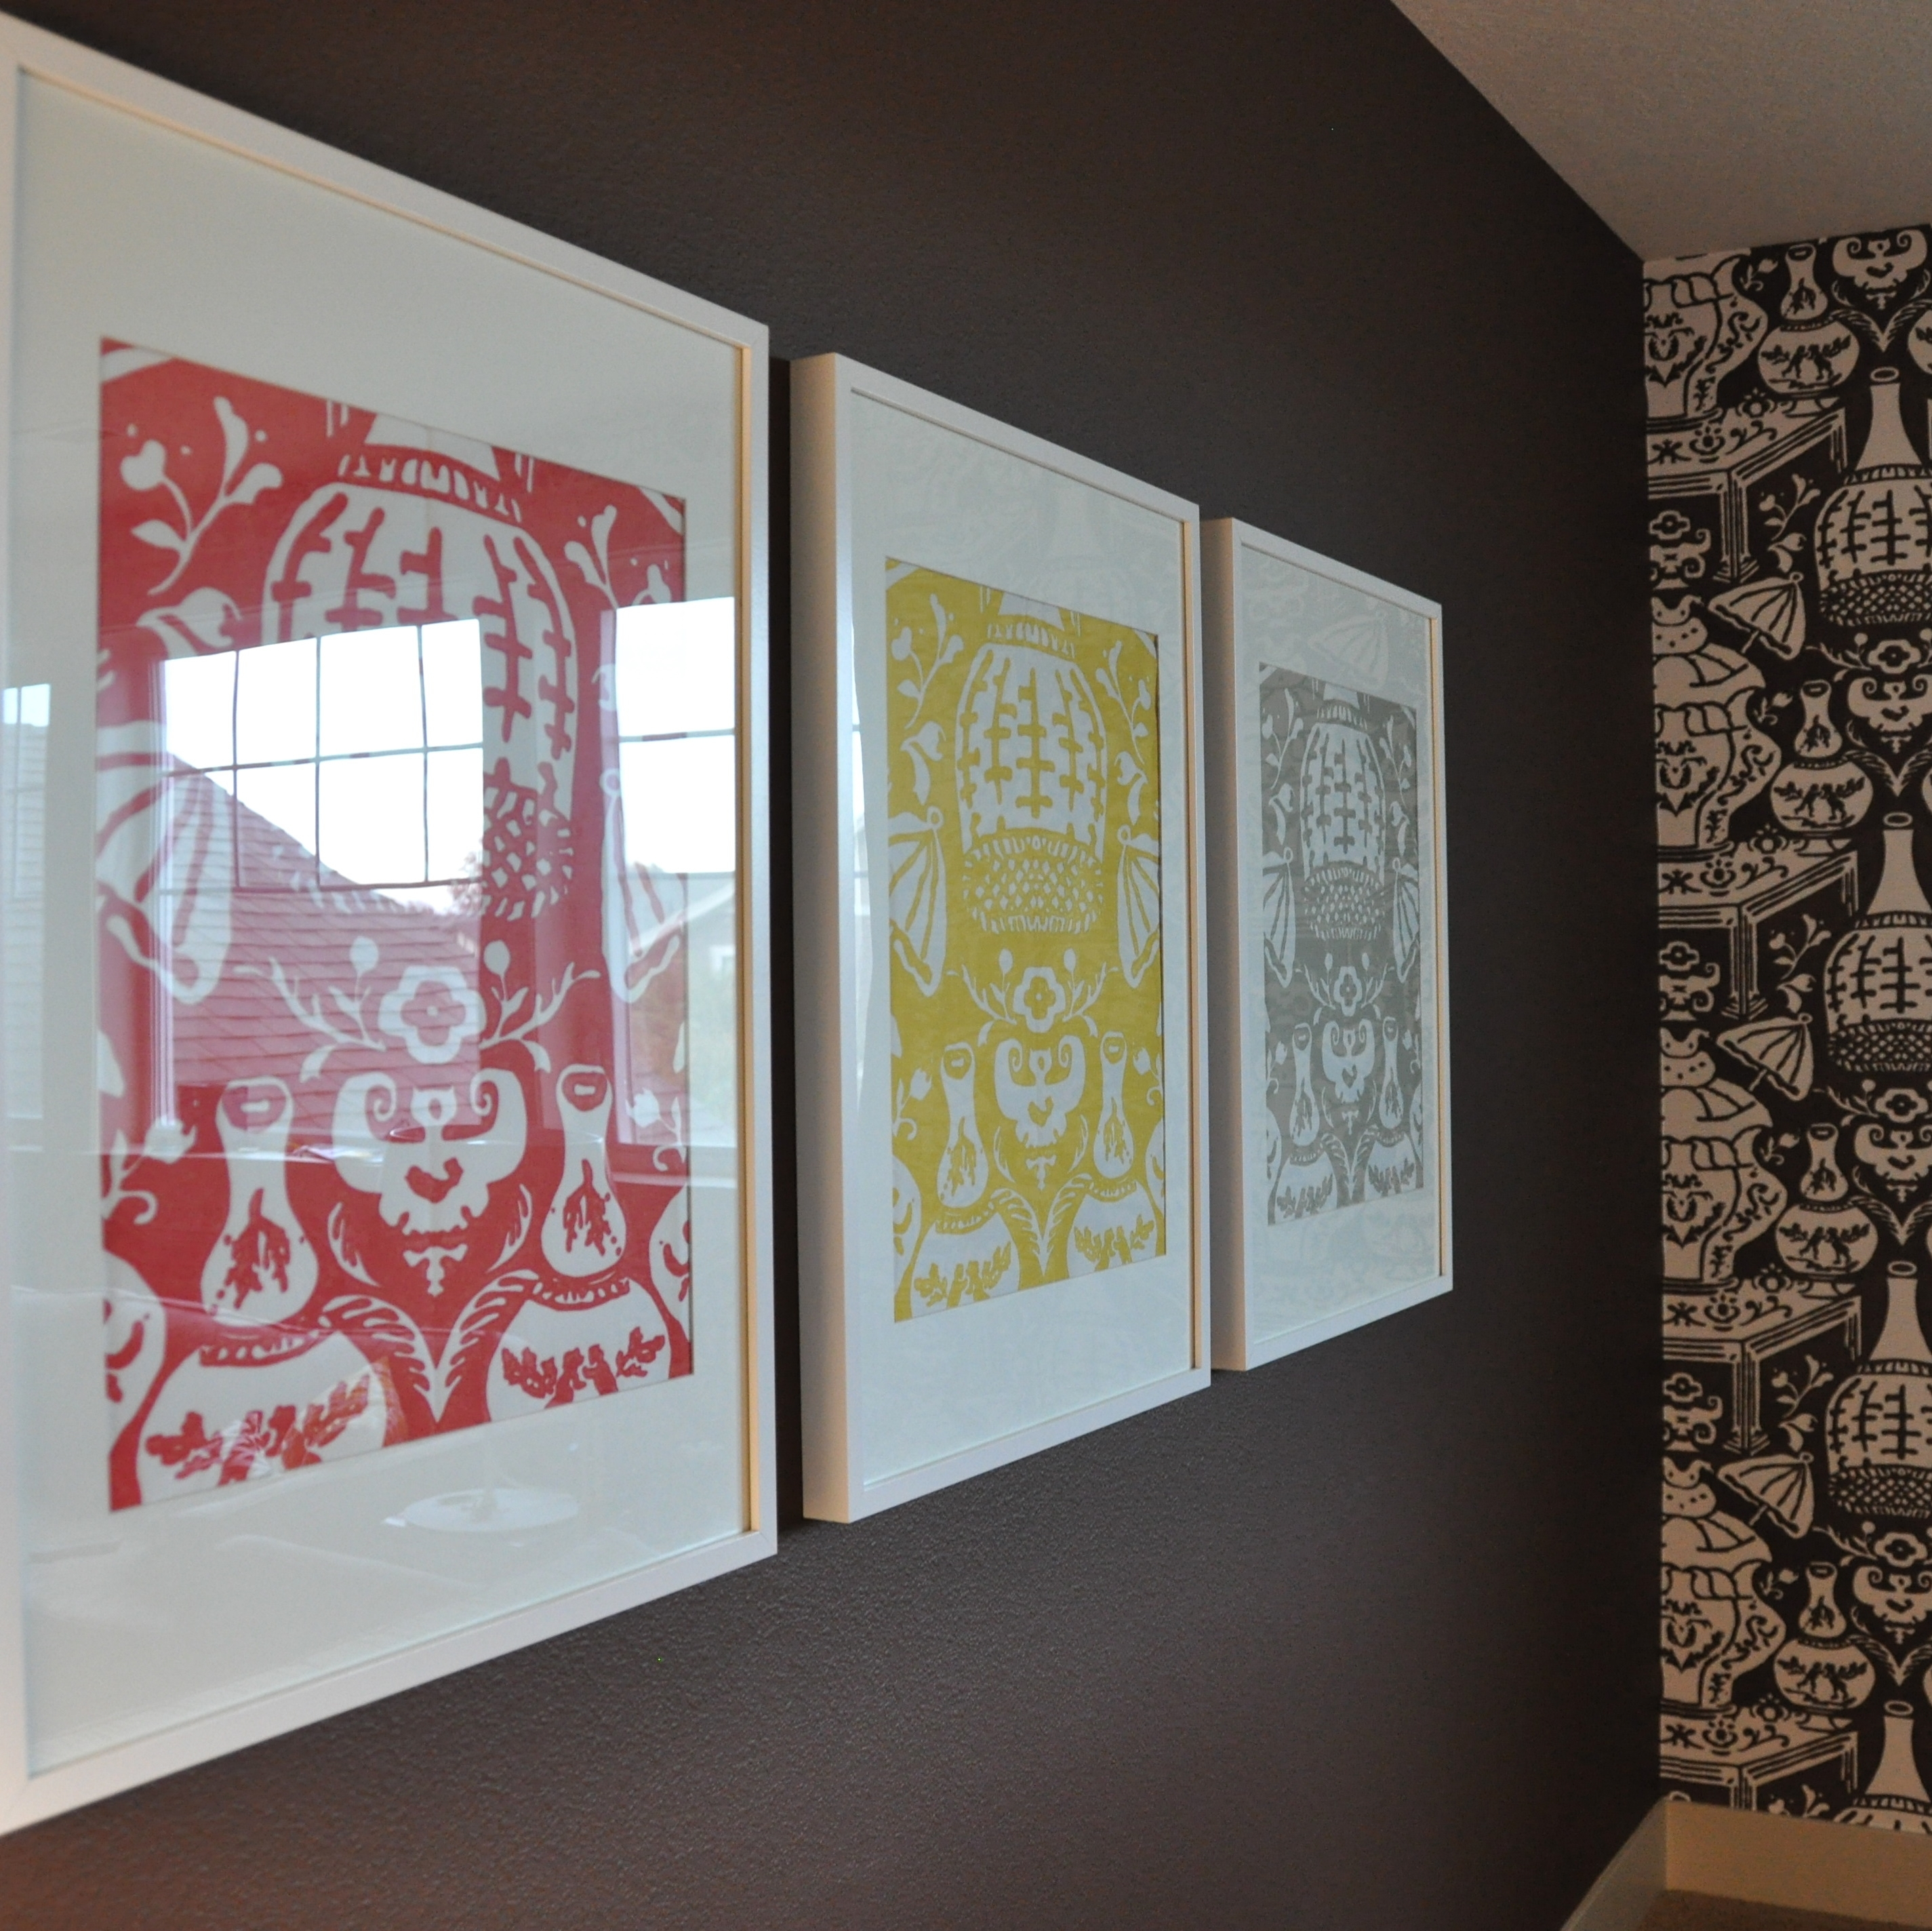 Wallpaper Samples In Ikea Ribba Frames = Simple & Fun Art! | Great With Regard To Most Current Fabric Swatch Wall Art (View 6 of 15)